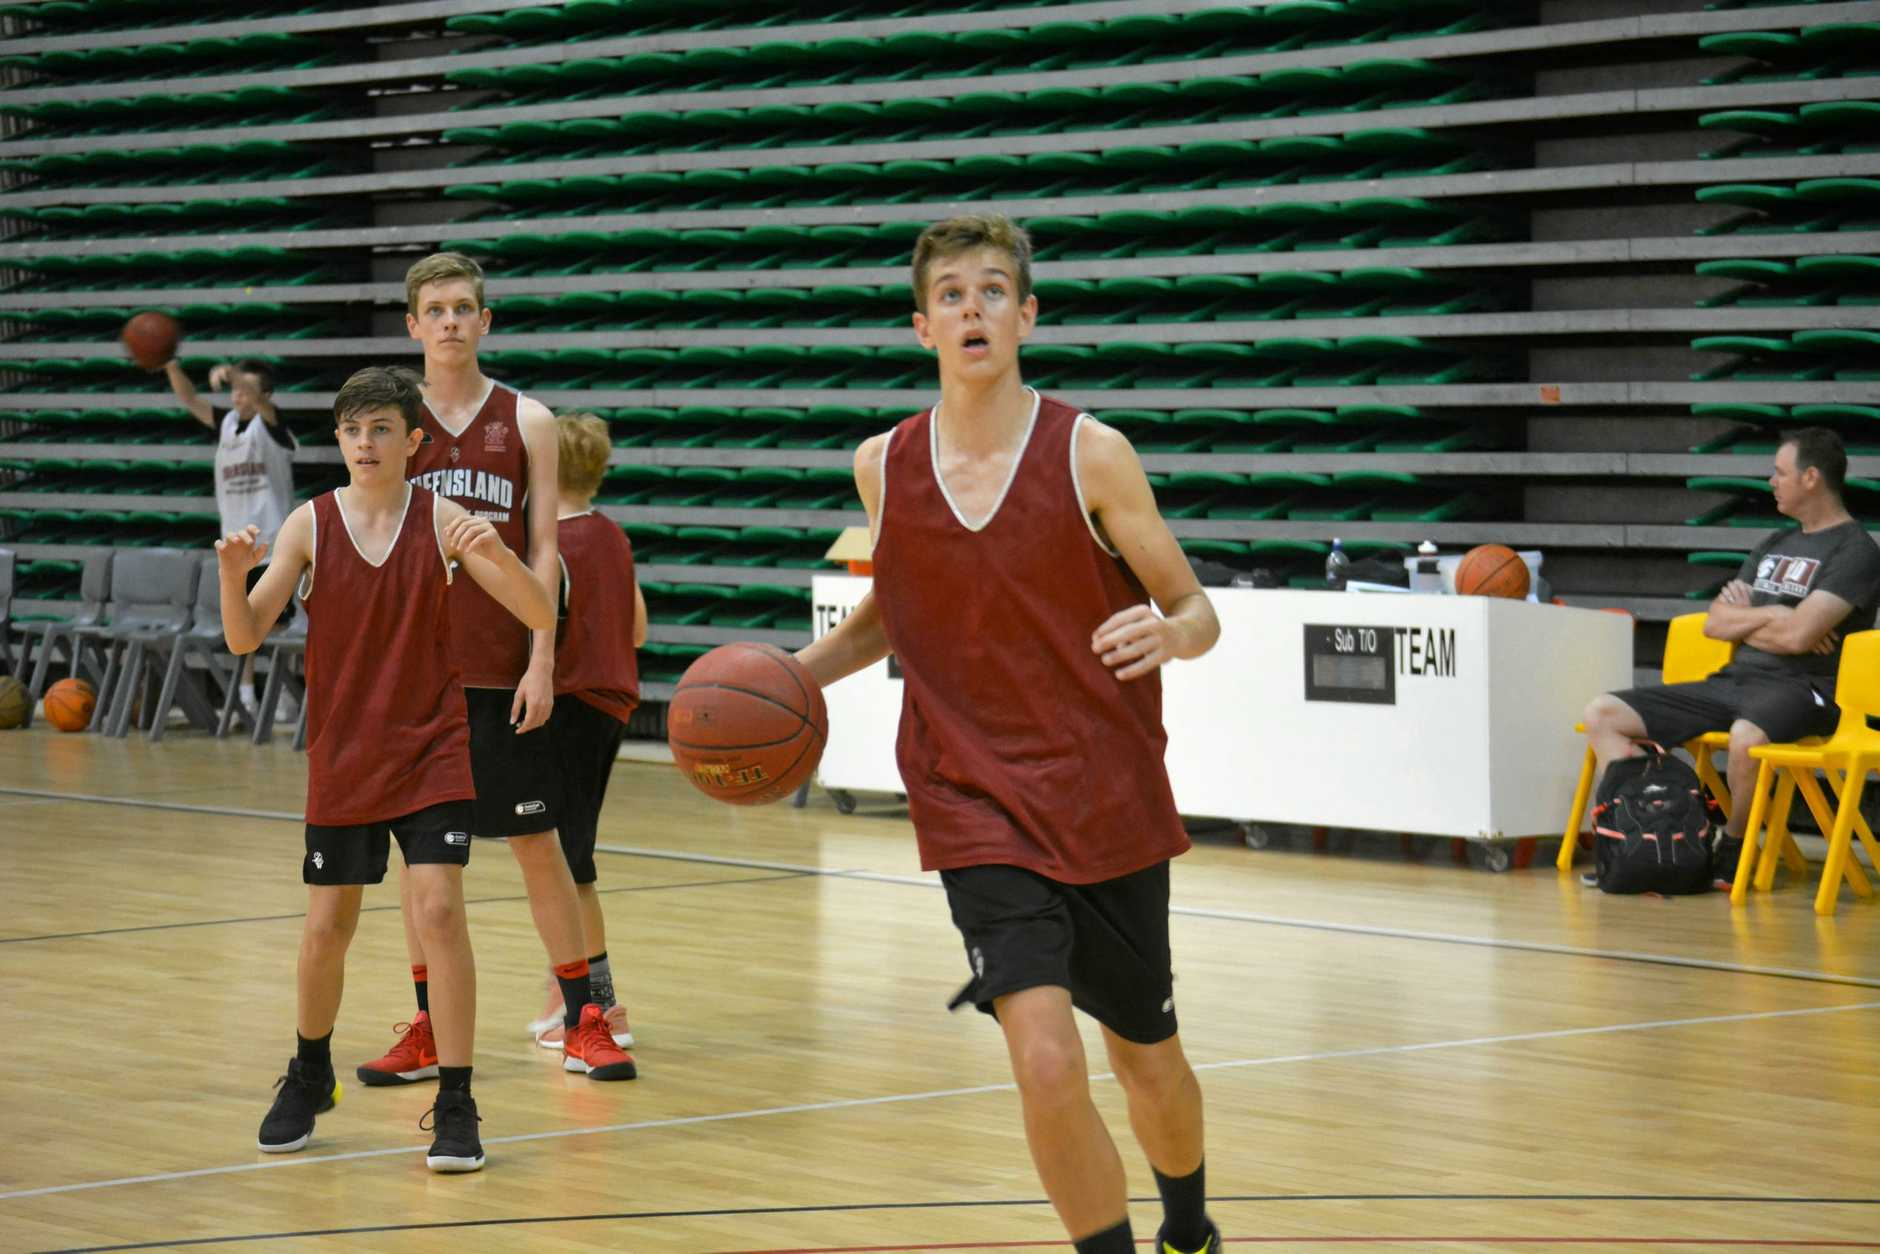 Marley Evans drives at the basket with Seth Collins and Jack Small looking on.